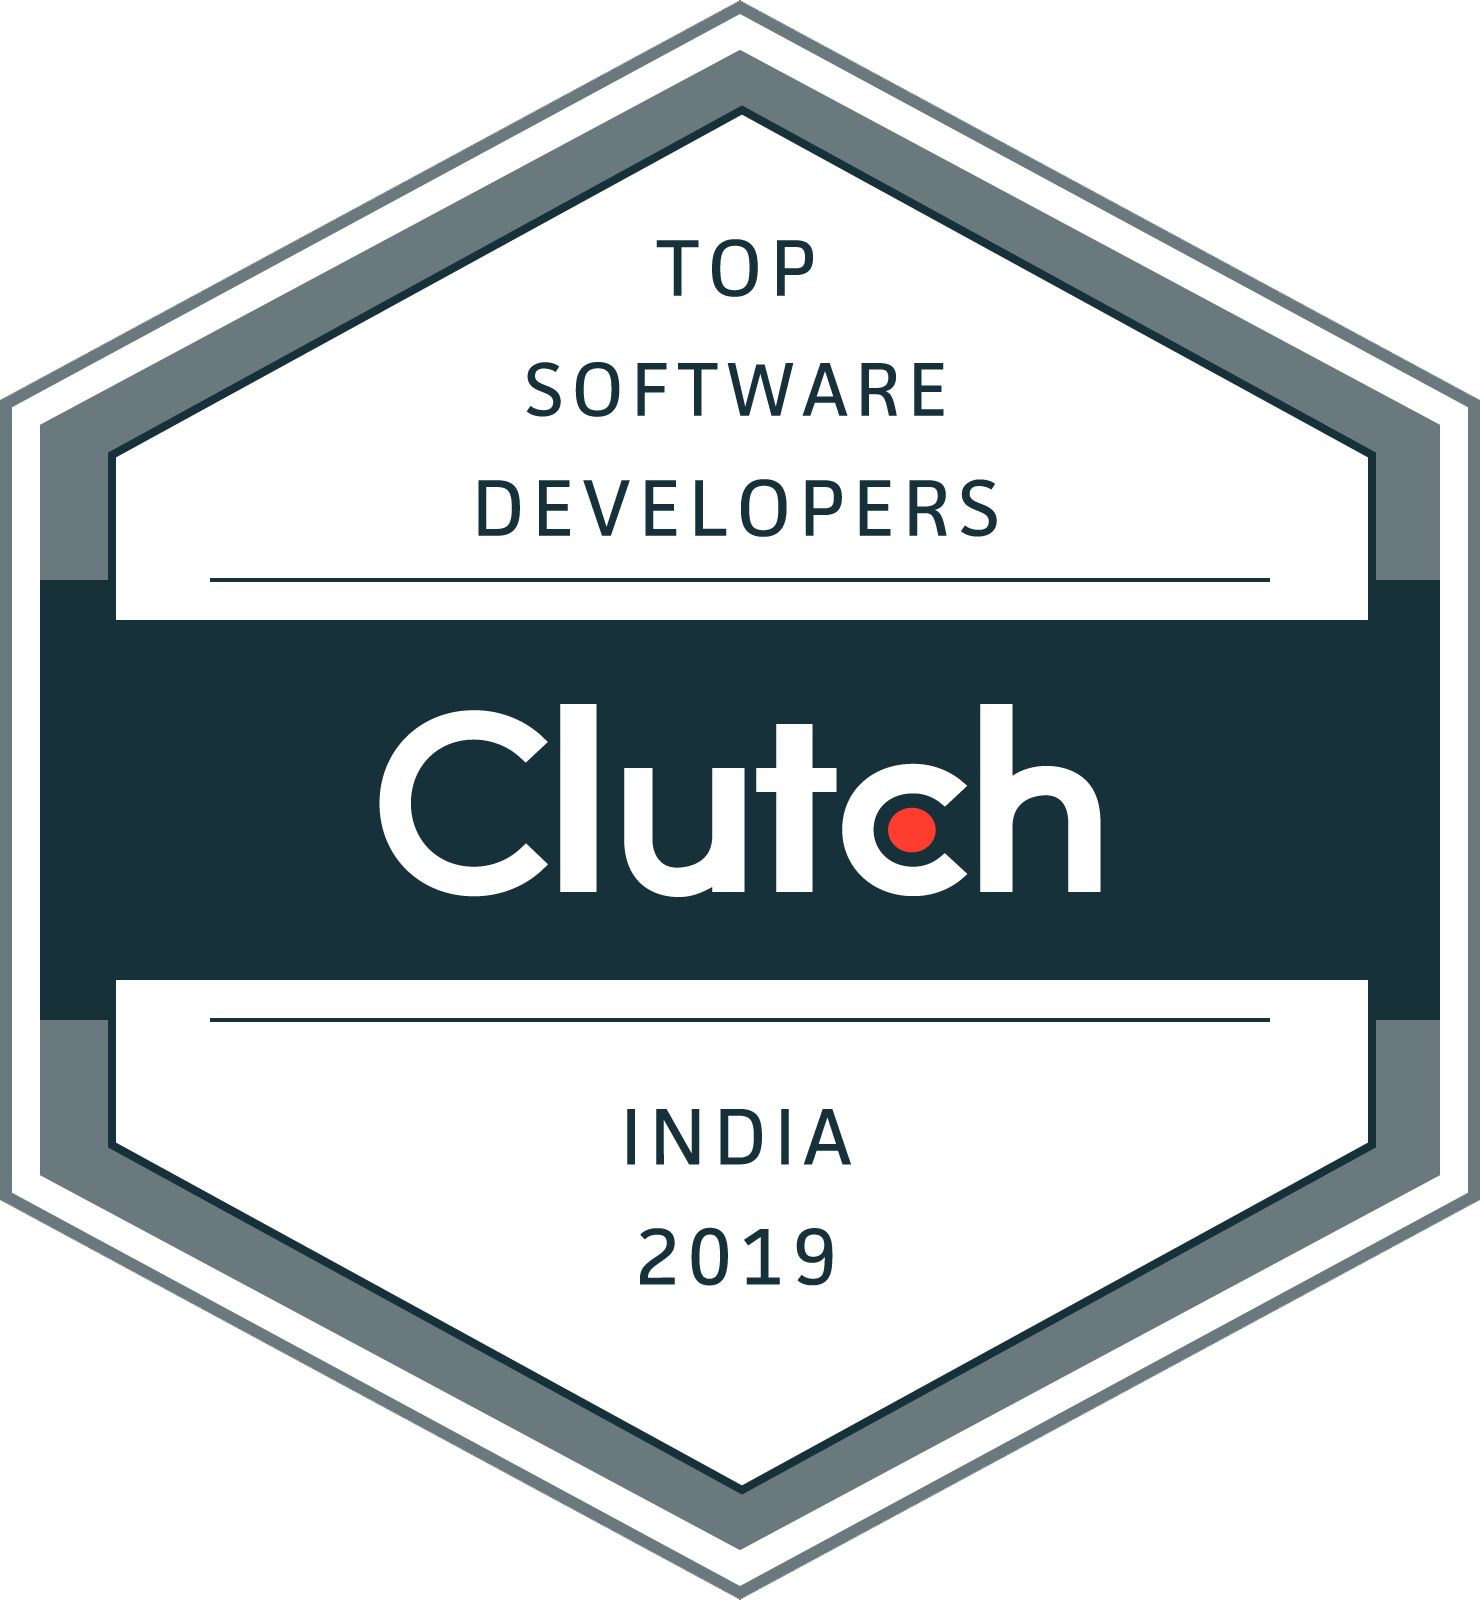 Clutch - Top Software Developers 2019